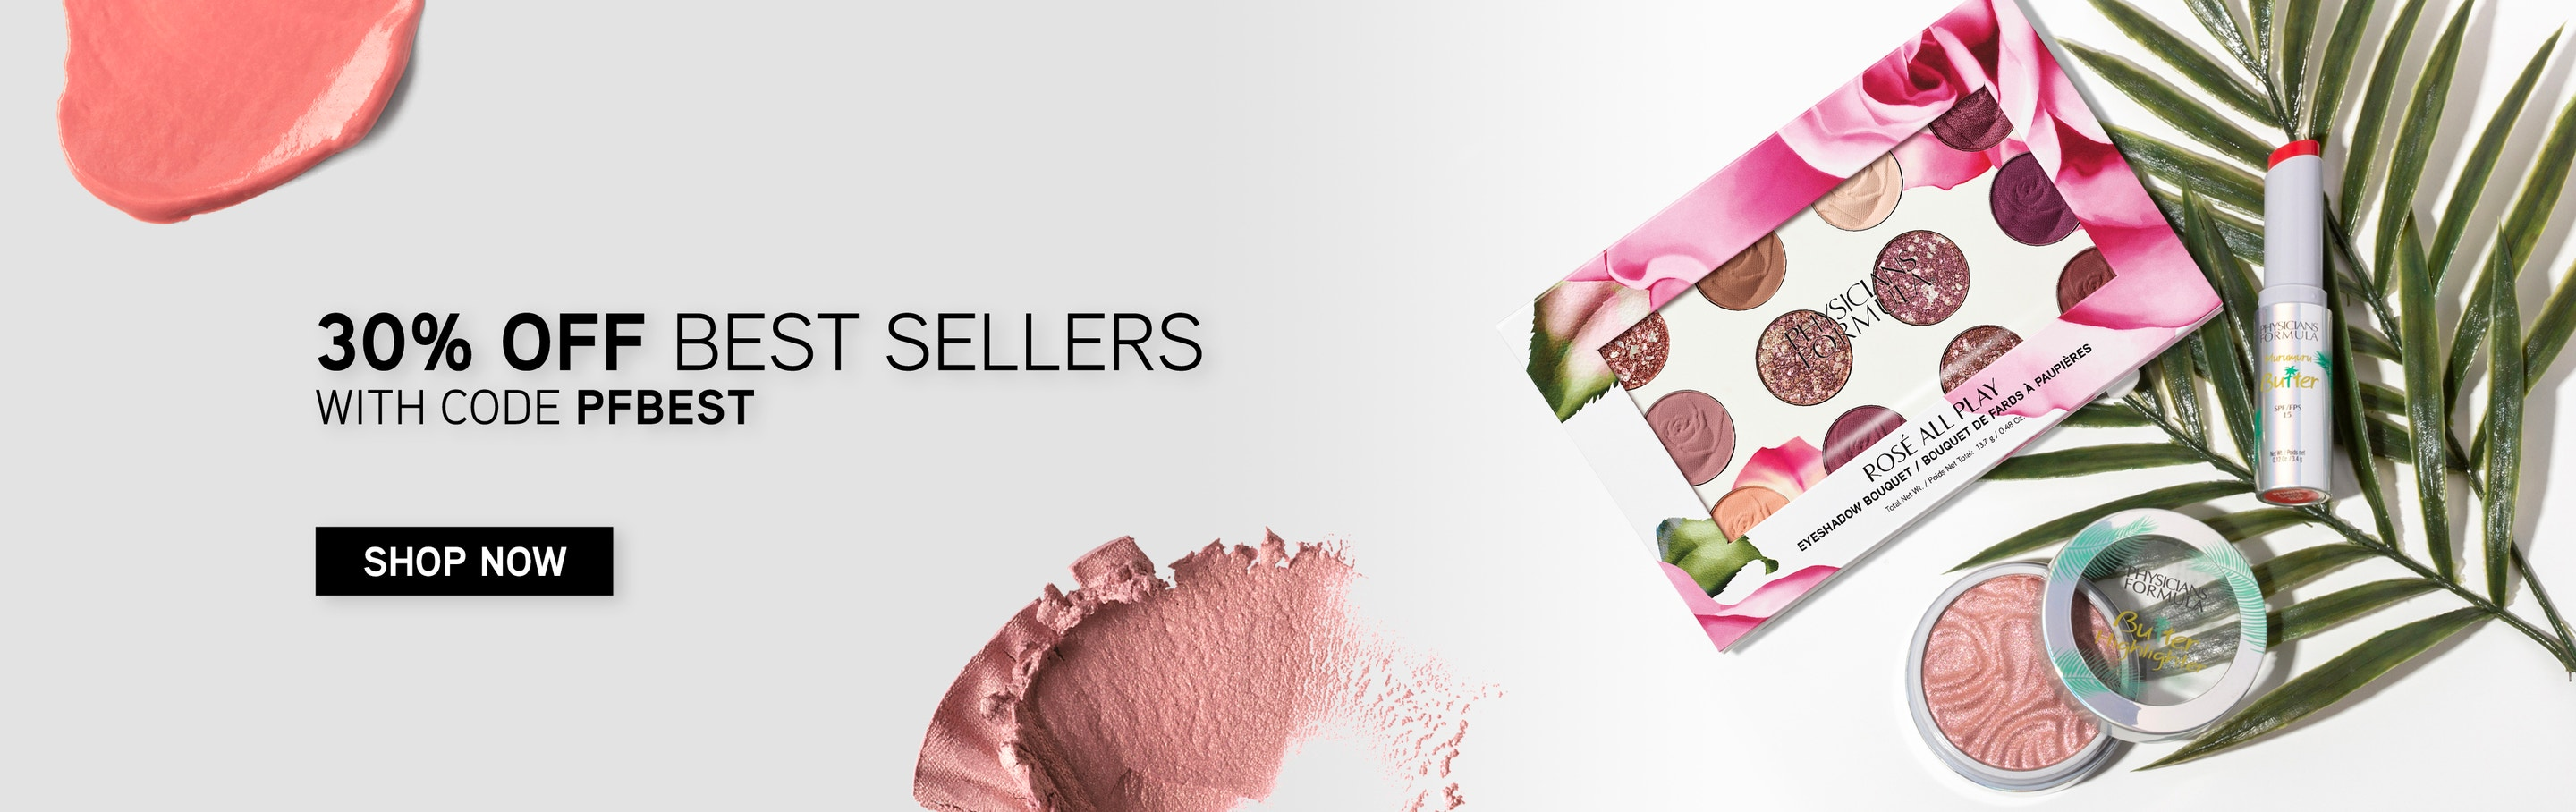 30% Off Best Sellers | Use Code: PFBEST | Shop Now!